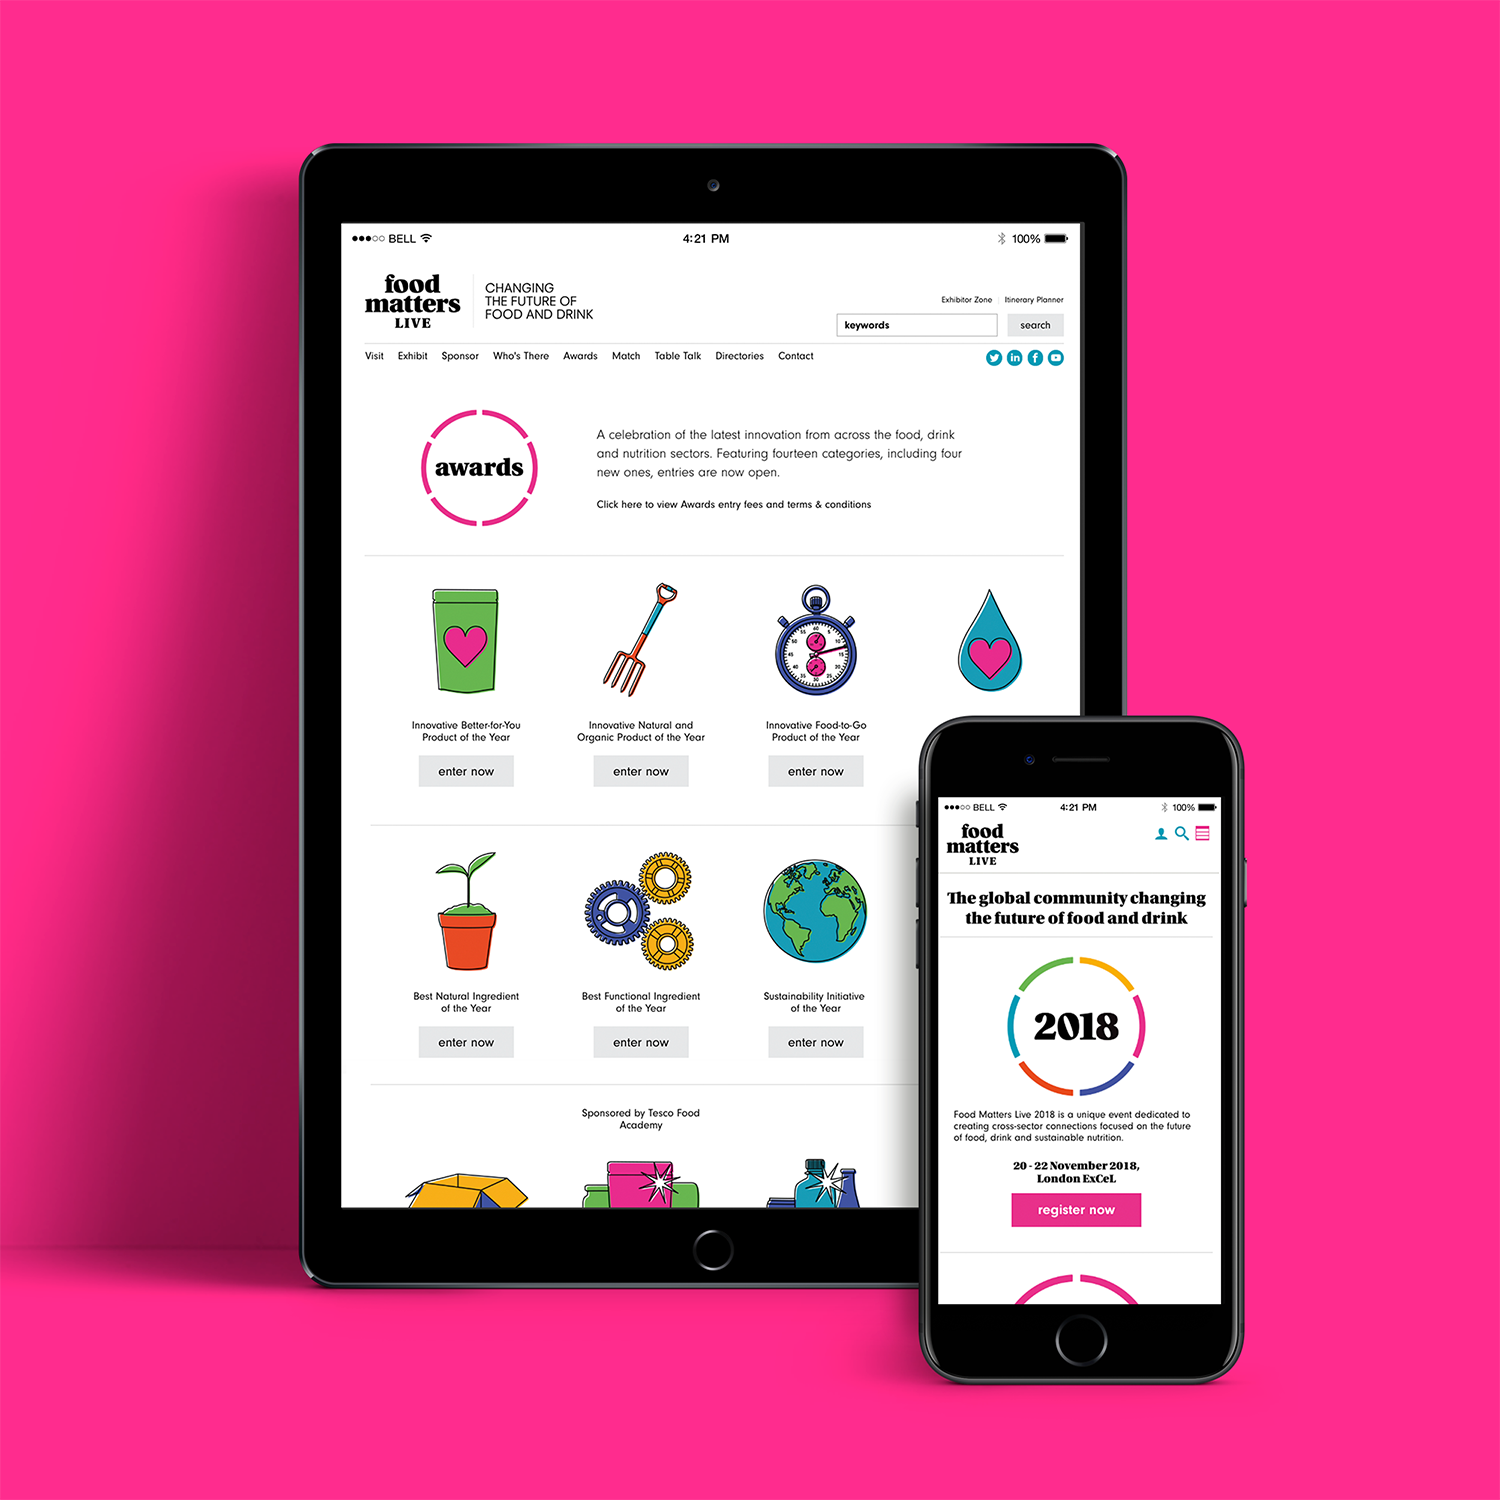 Straight Forward. Food matters Live rebrand. Website home page on iPad and iPhone